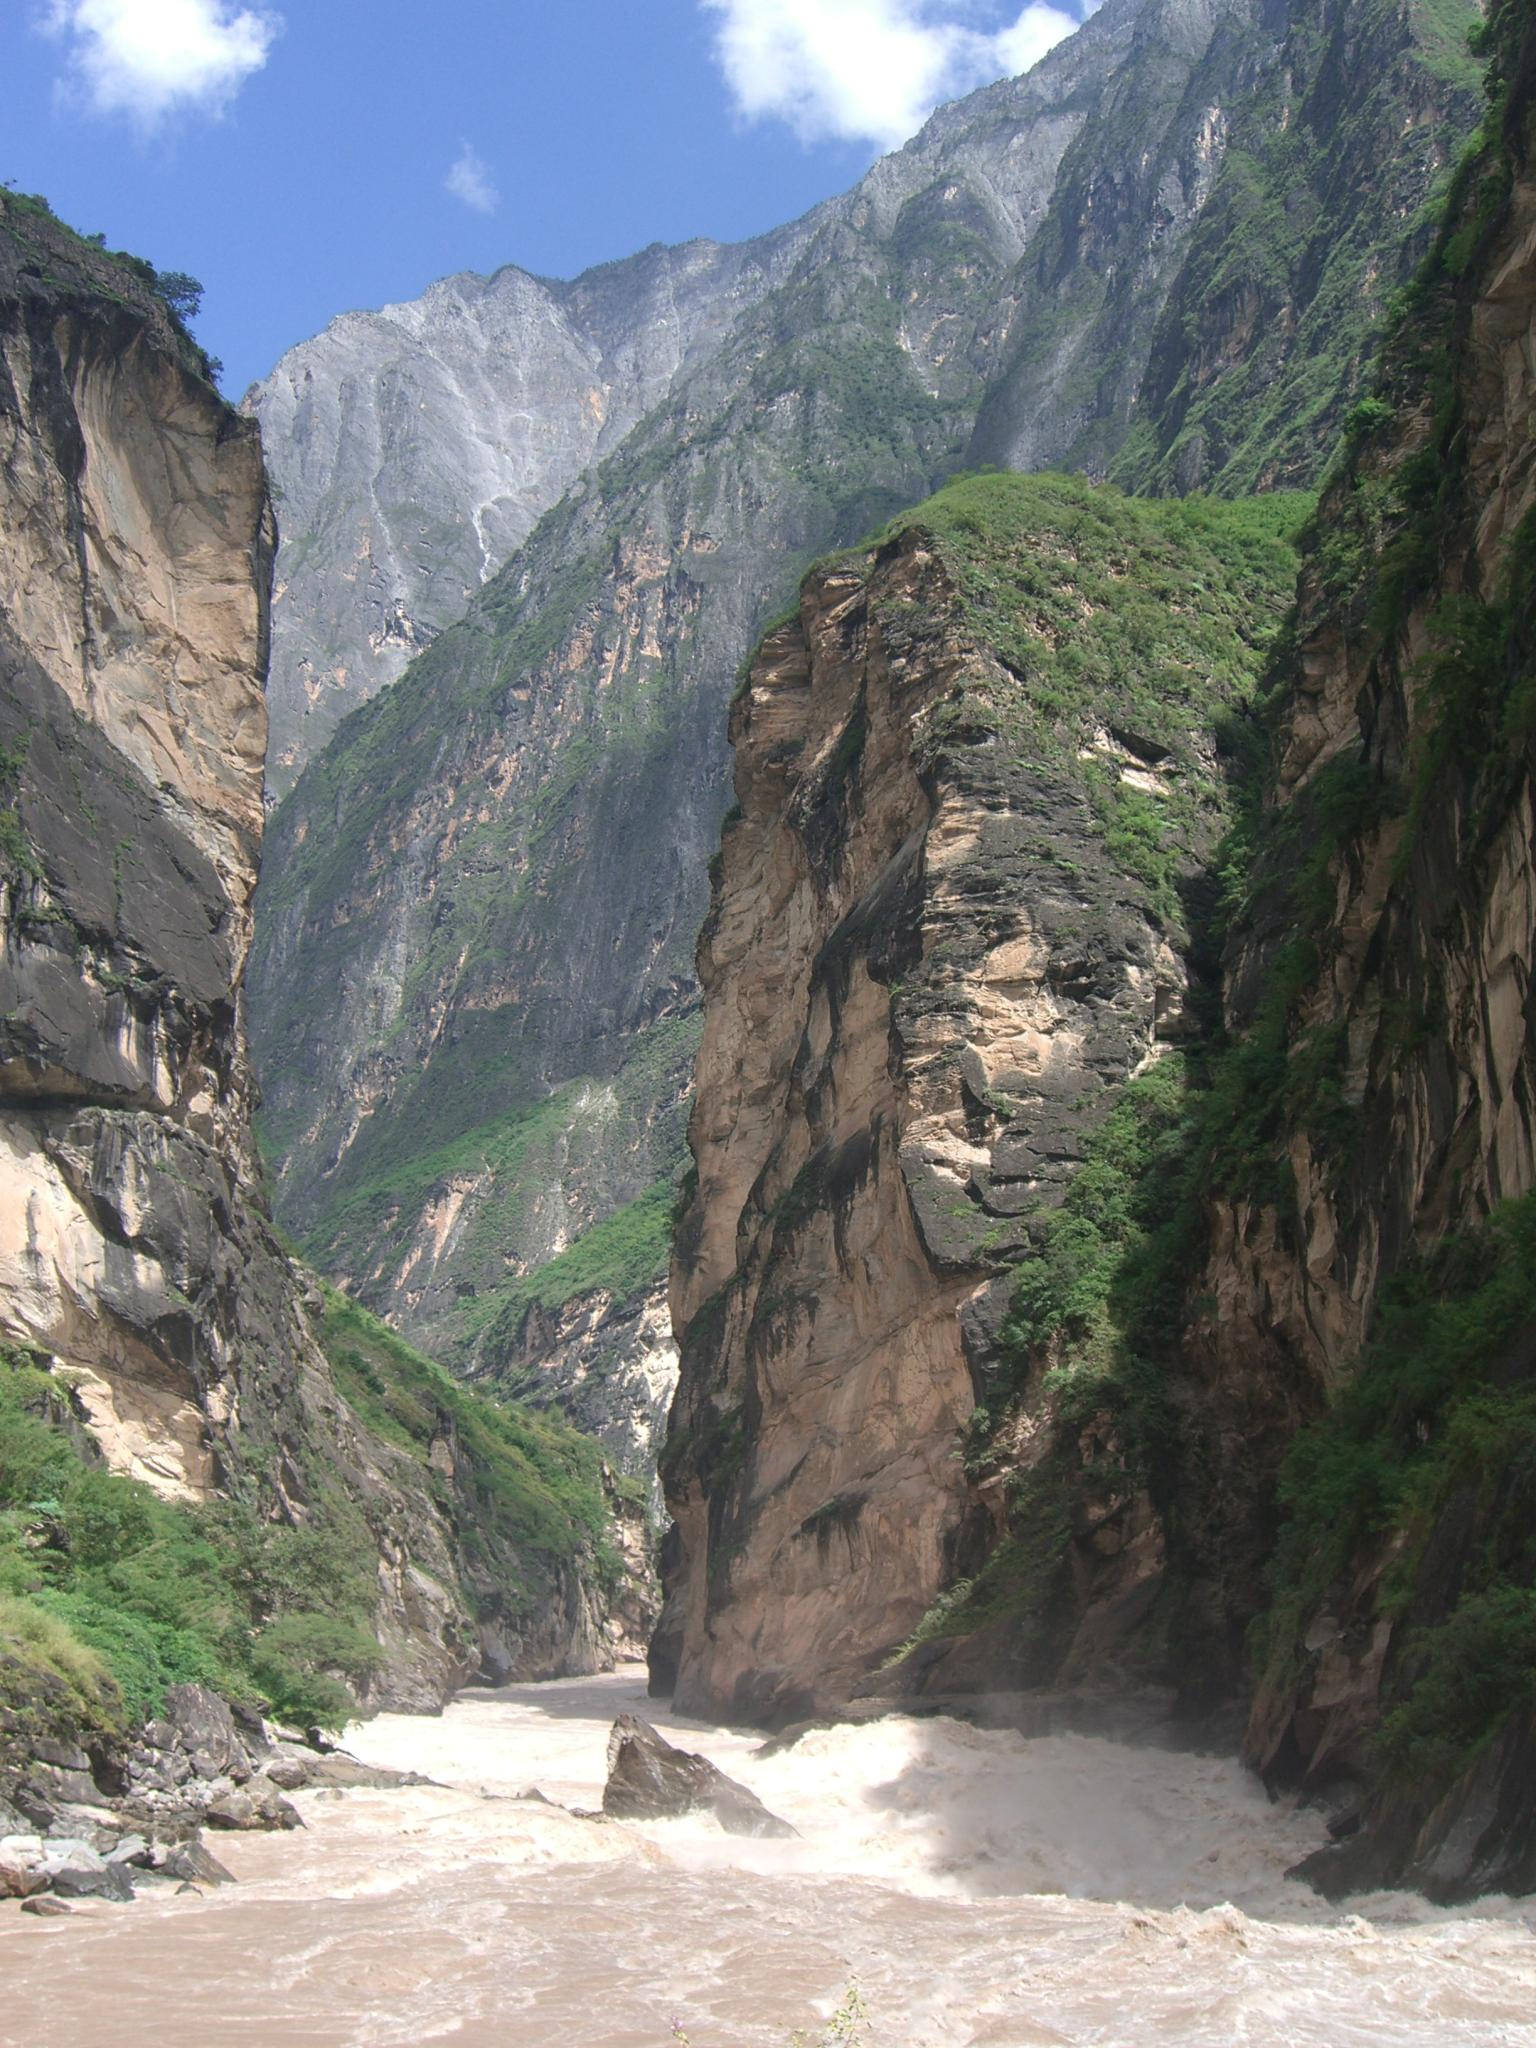 Yangjia River downstream - Middle gorge - Tiger Leaping Gorge